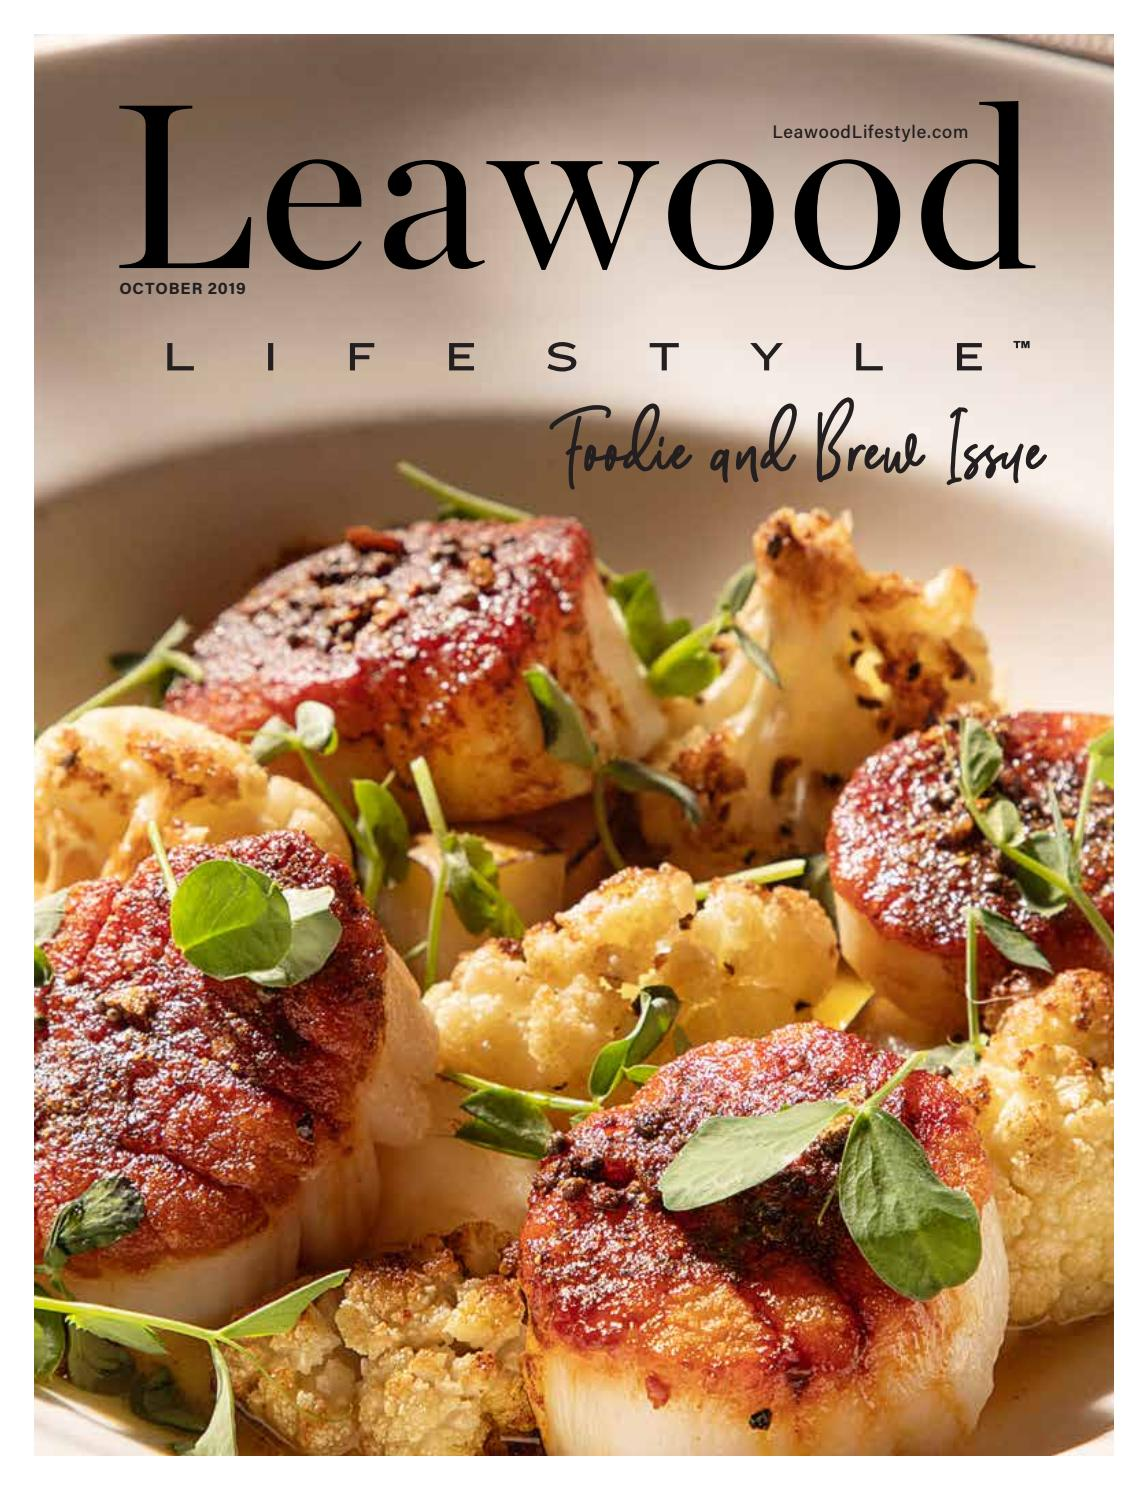 Asian Kitchen Le Havre leawood, ks october 2019lifestyle publications - issuu